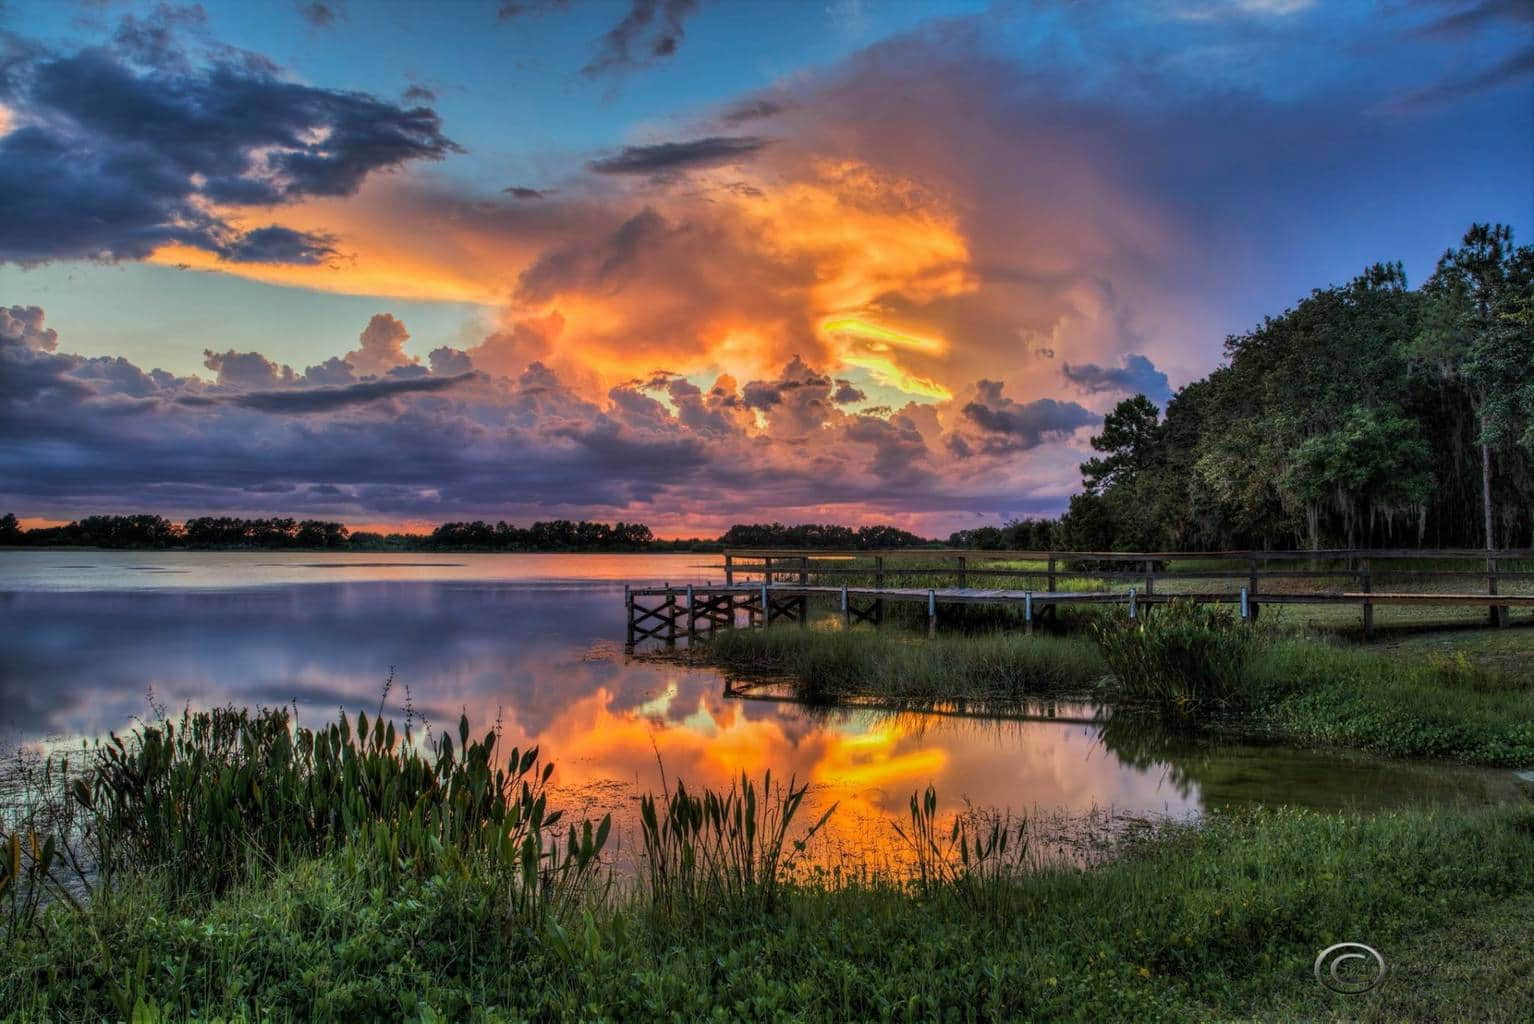 Amazing color last night as the sun was setting between two thunderstorms in Tampa as seen from Hardee Lakes Park in Bowling Green, Florida